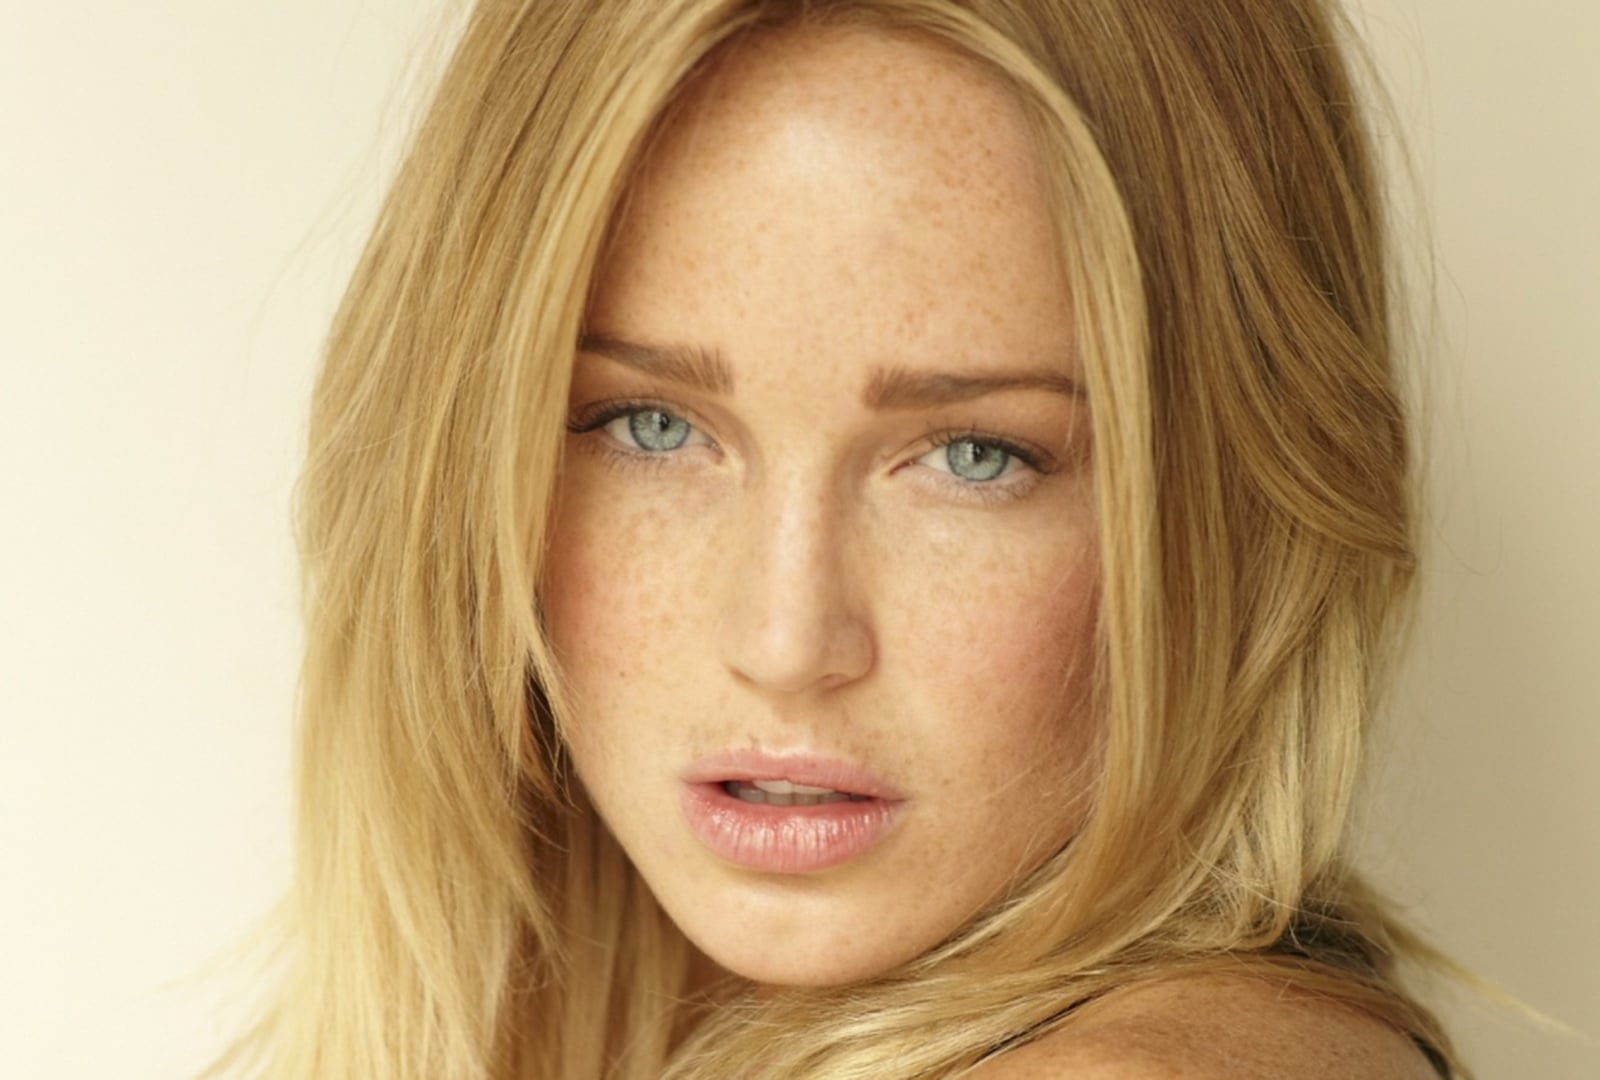 Caity Lotz face walpapers for windows